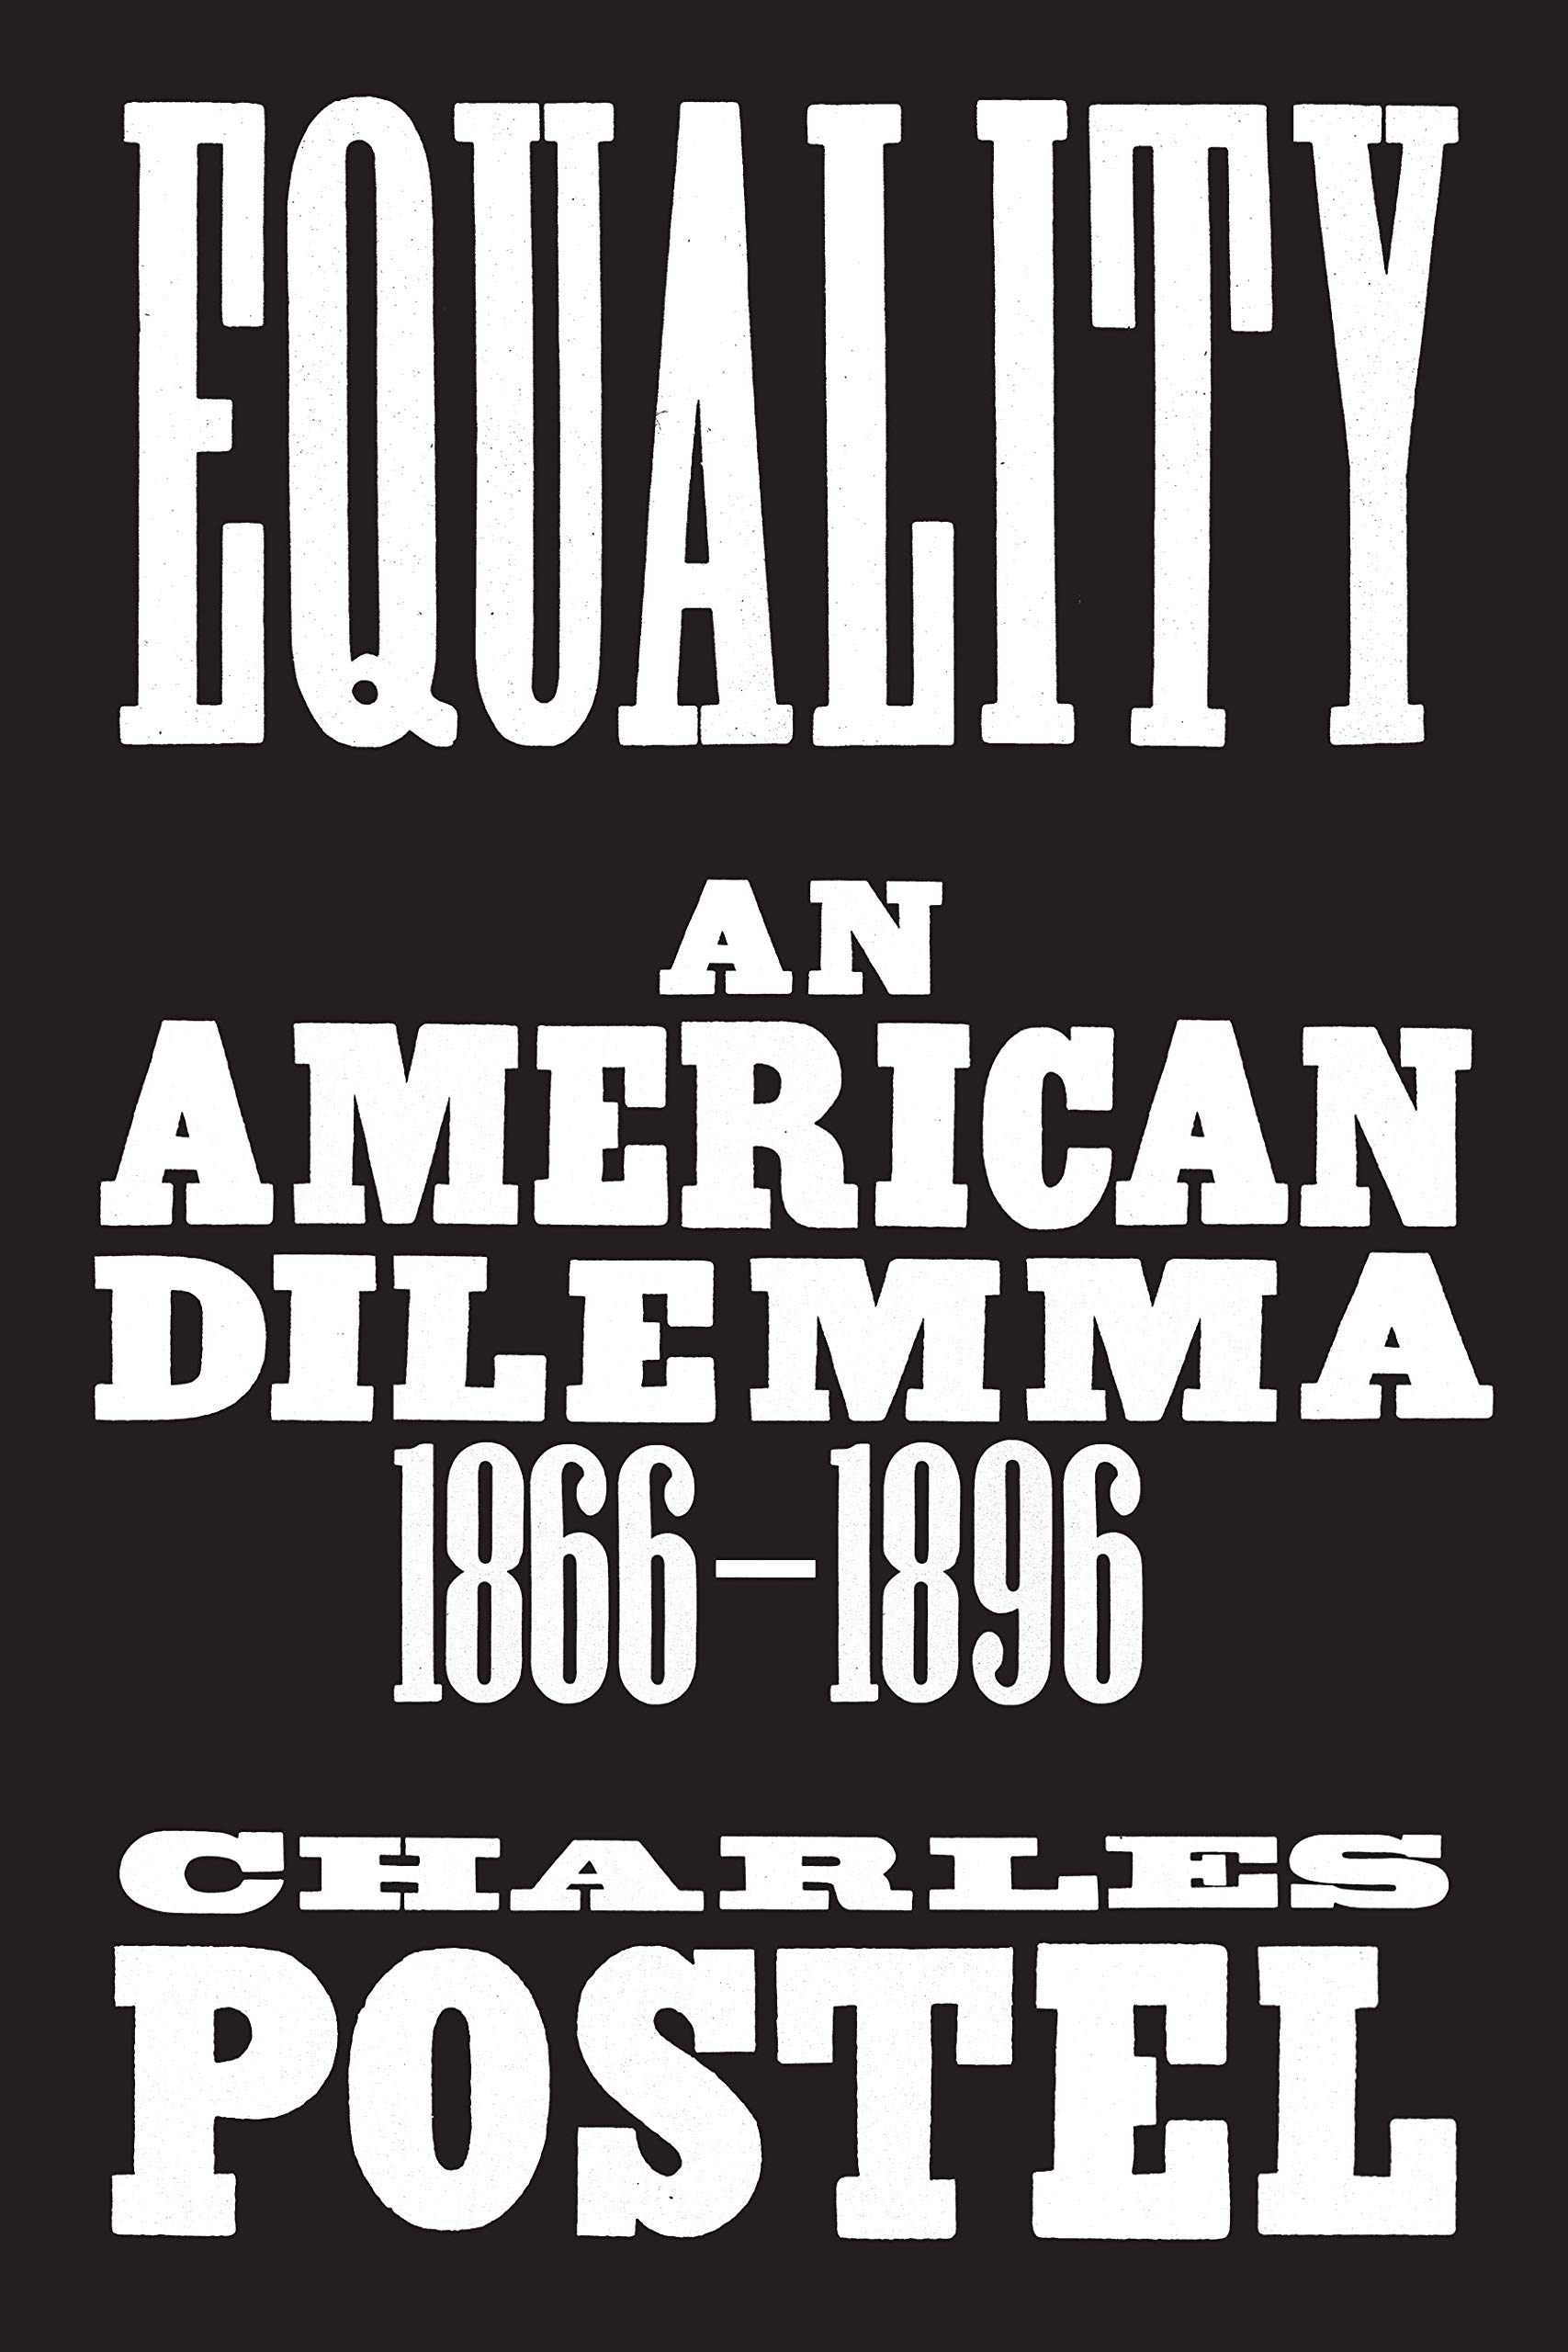 Equality: An American Dilemma, 1866-1896     by Charles Postel Farrar, Straus and Giroux, 2019